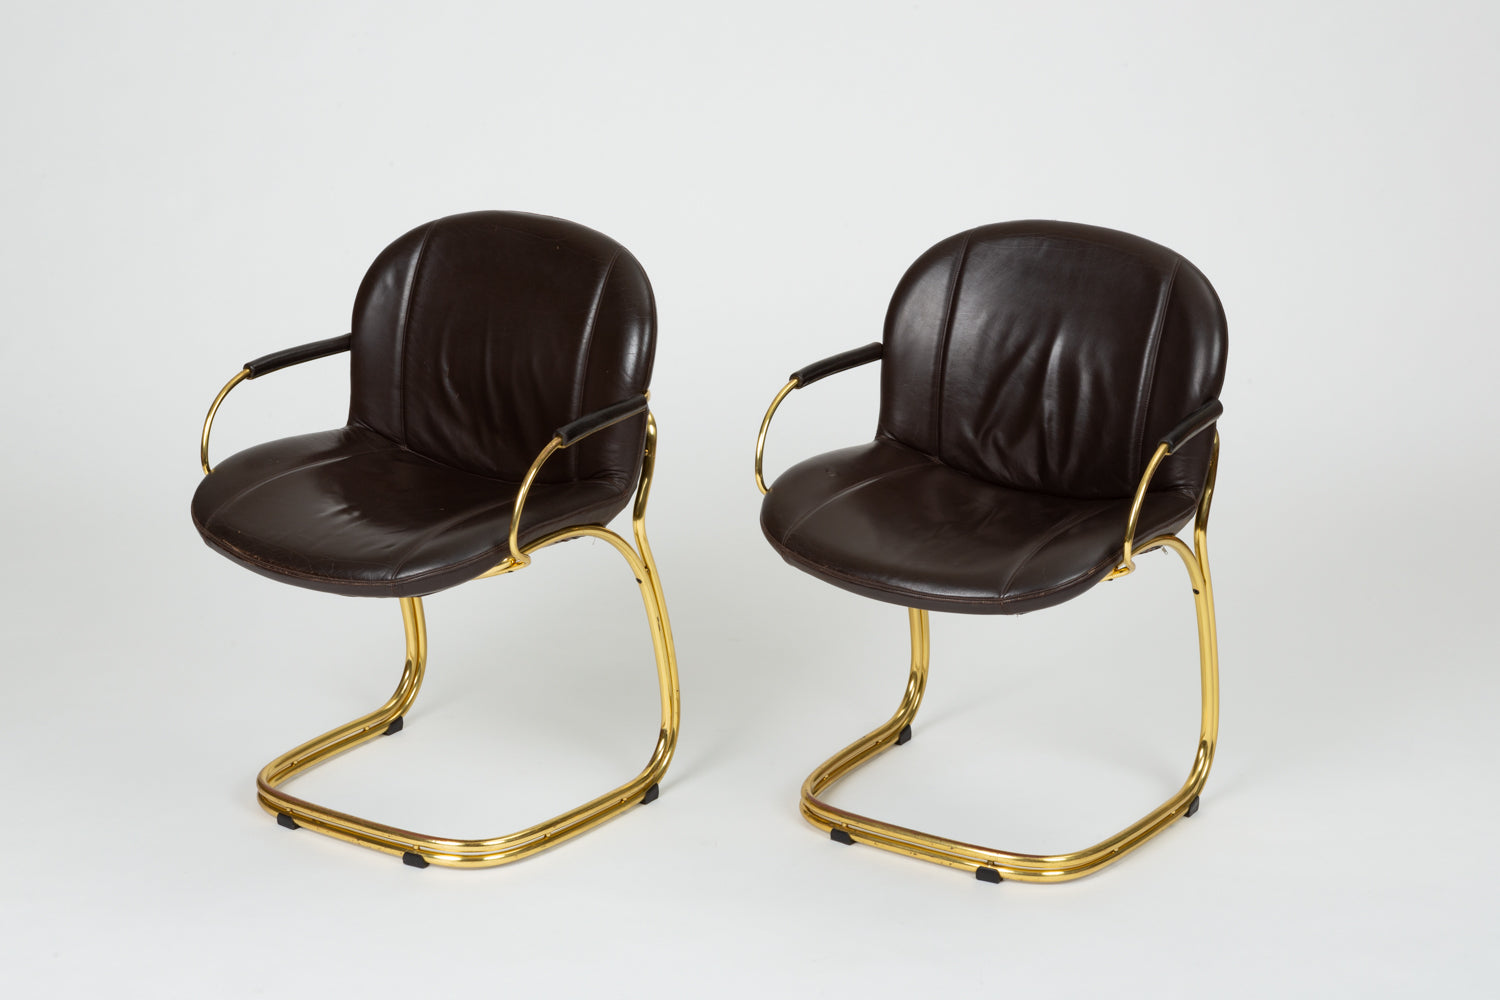 Pair of Cantilevered Arm Chairs by Gastone Rinaldi for Rima